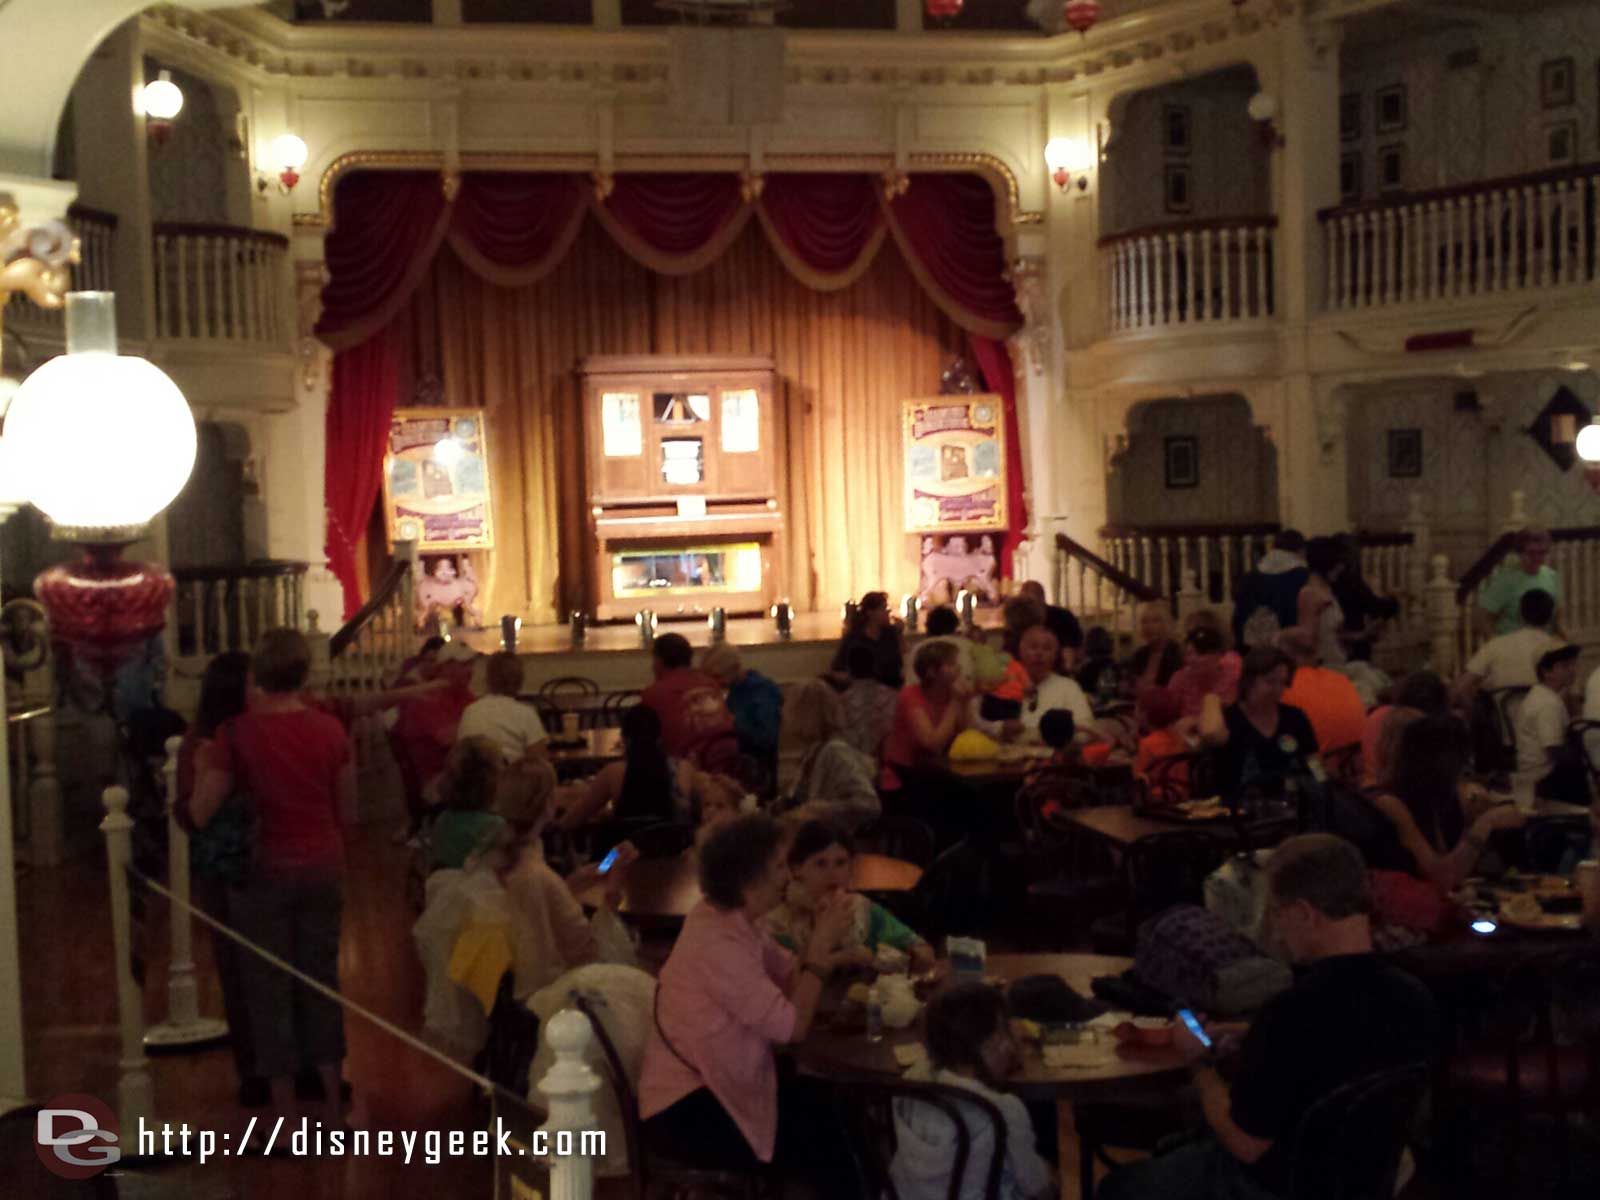 The Diamond Horseshoe is open for lunch today